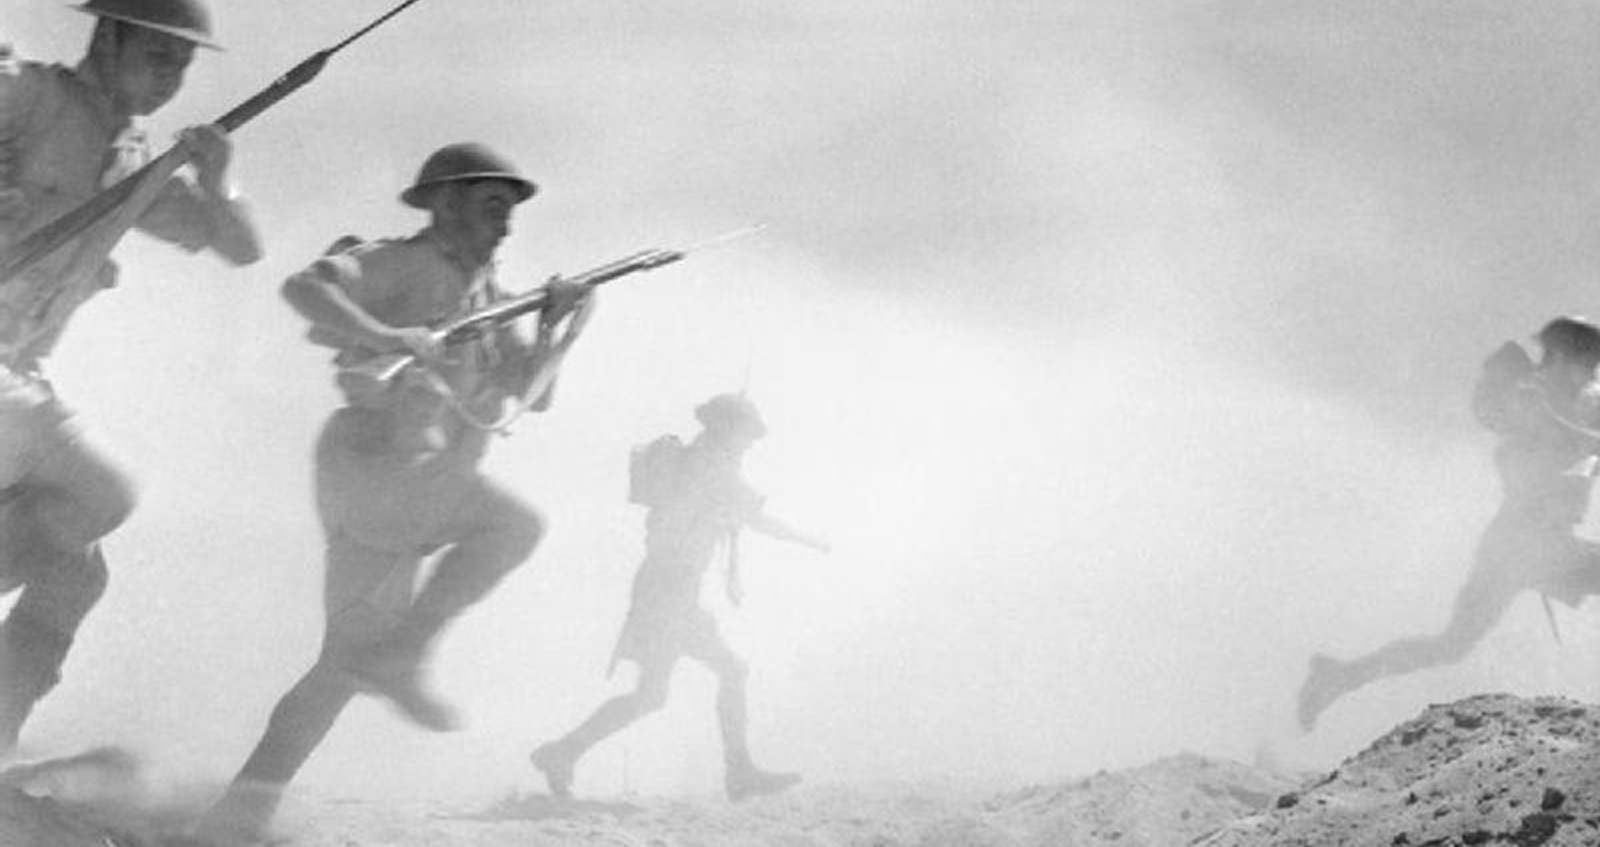 Soldiers advancing over ground at El Alamein